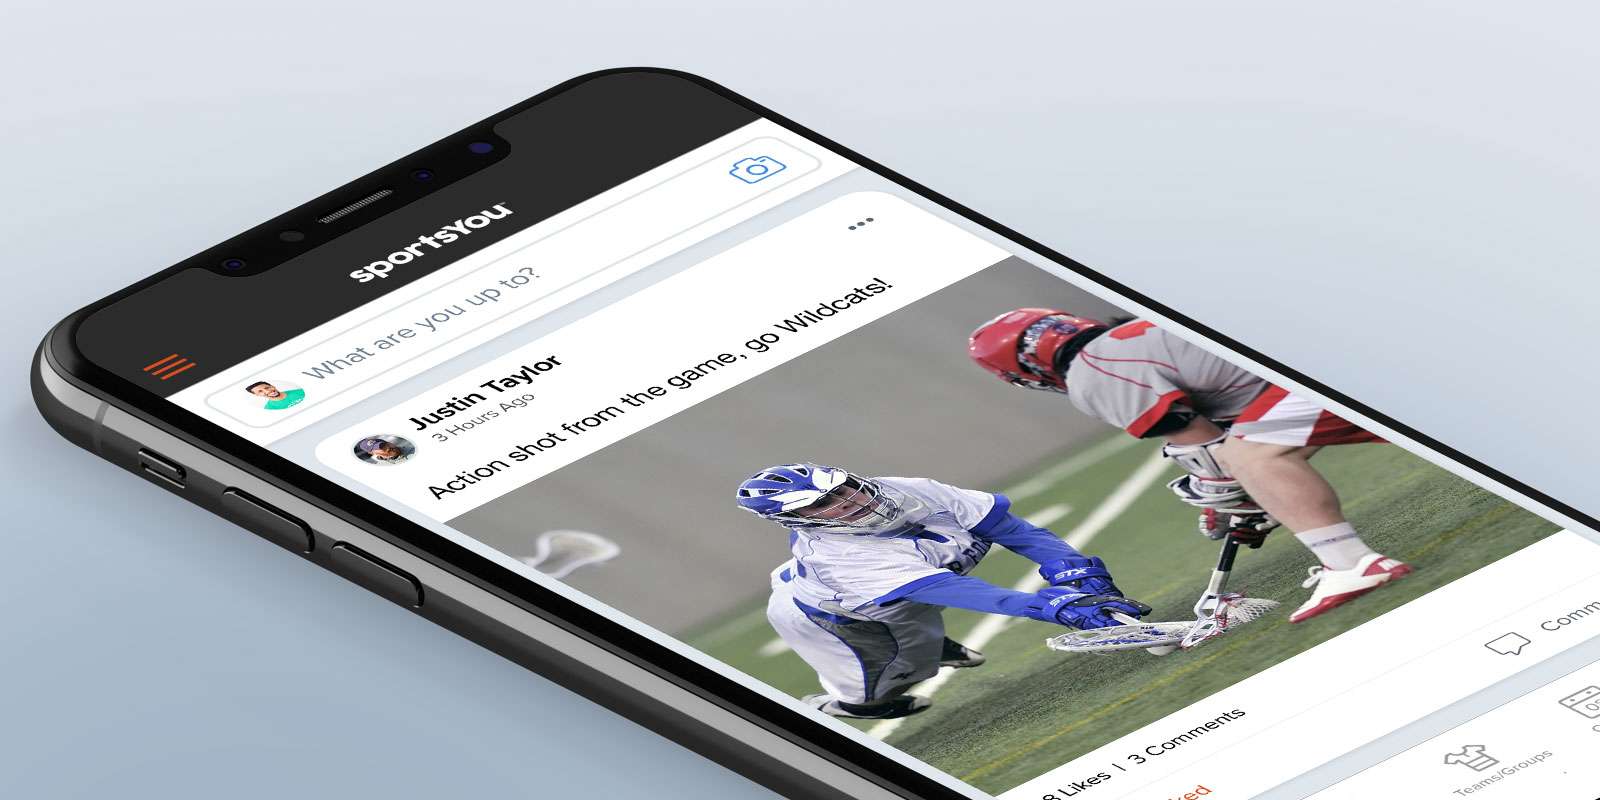 Presenting a fresh new look for the feed on the sportsYou app